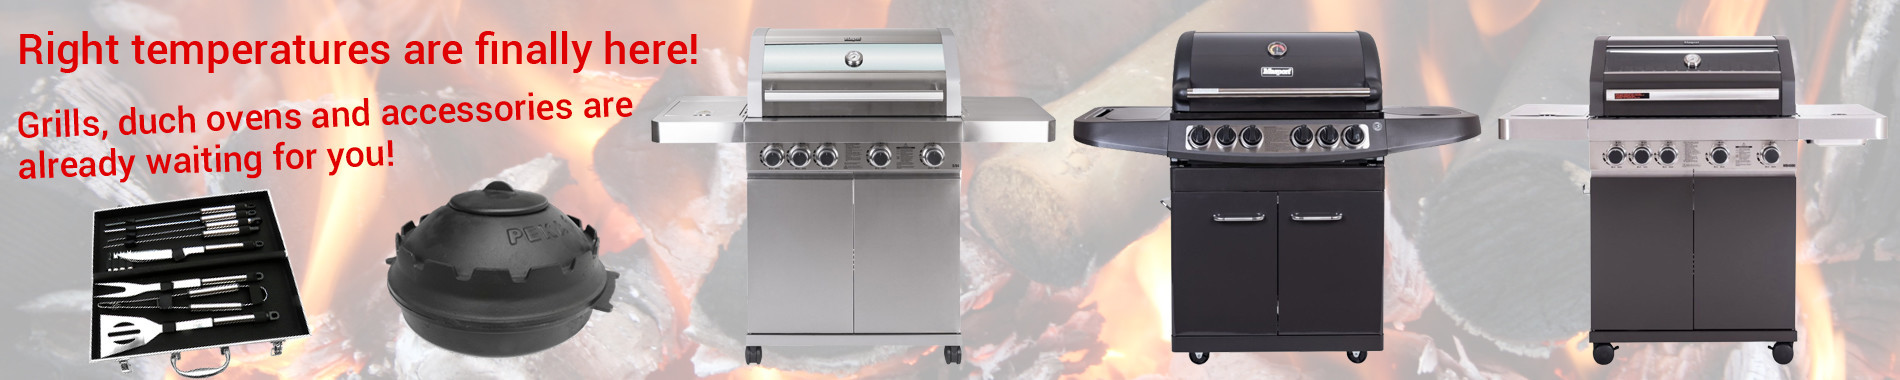 Grills, duch ovens, and accessories